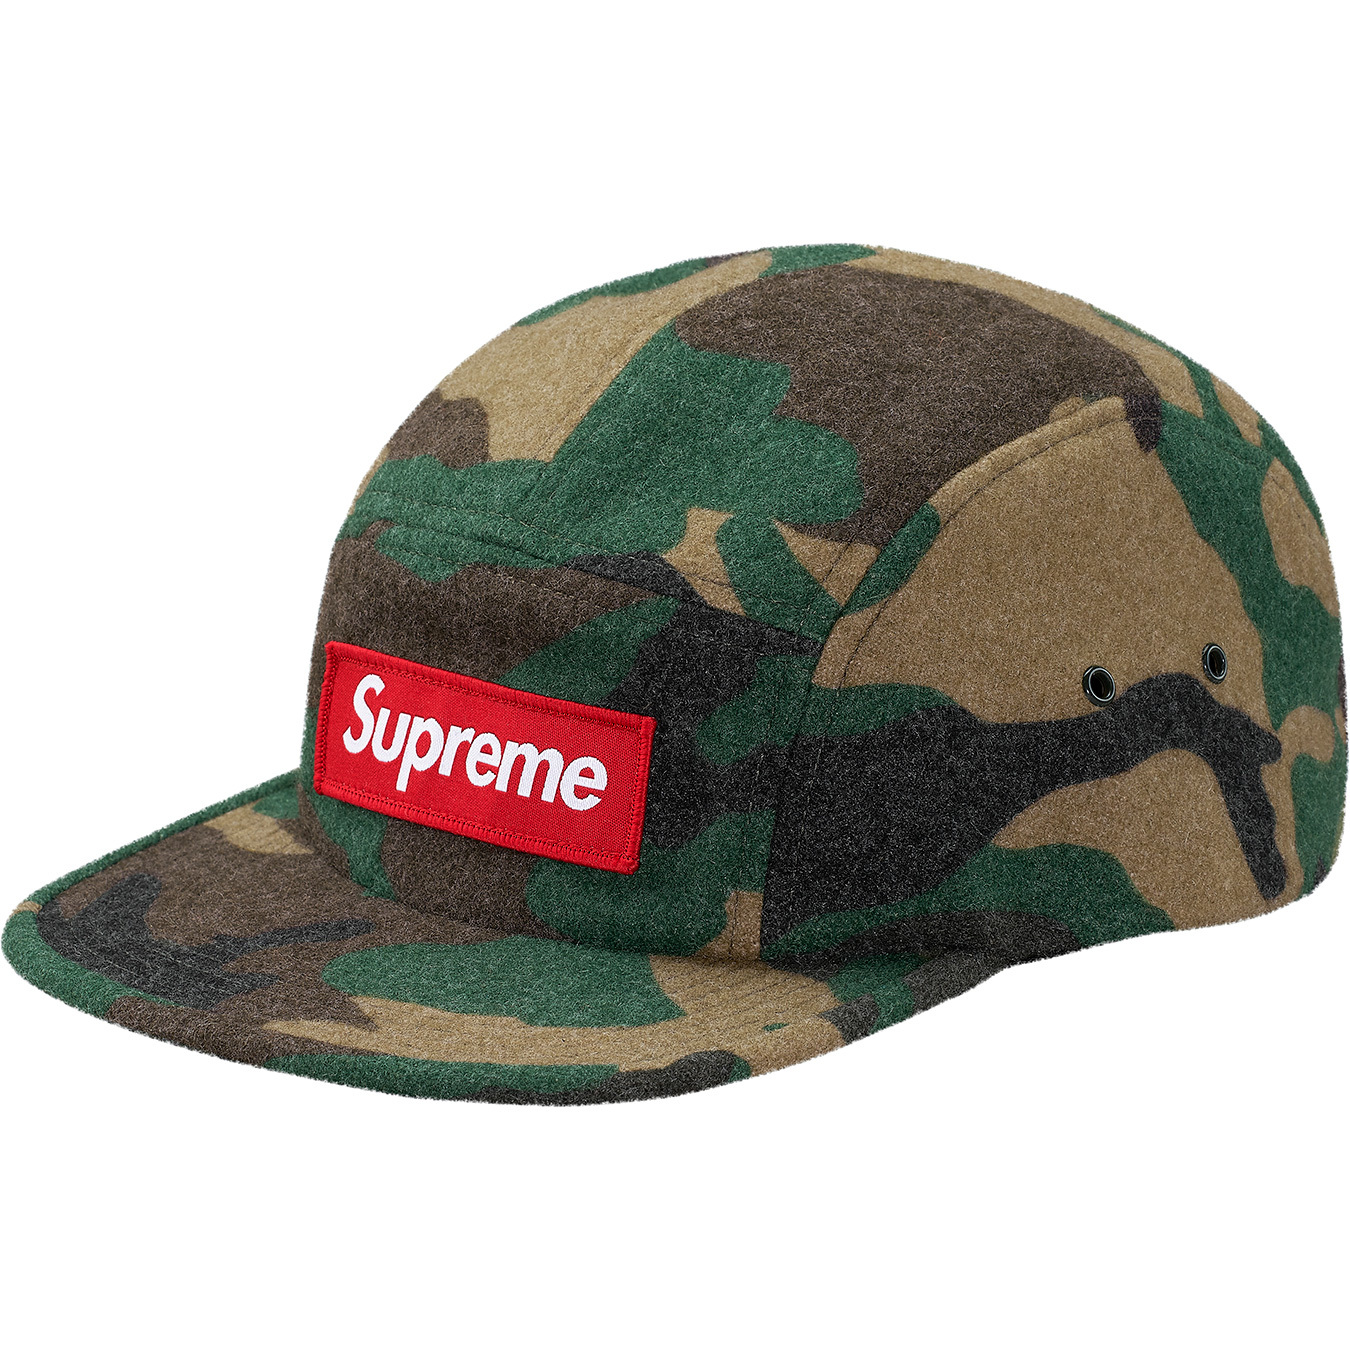 supreme-2017aw-fall-winter-camo-wool-camp-cap